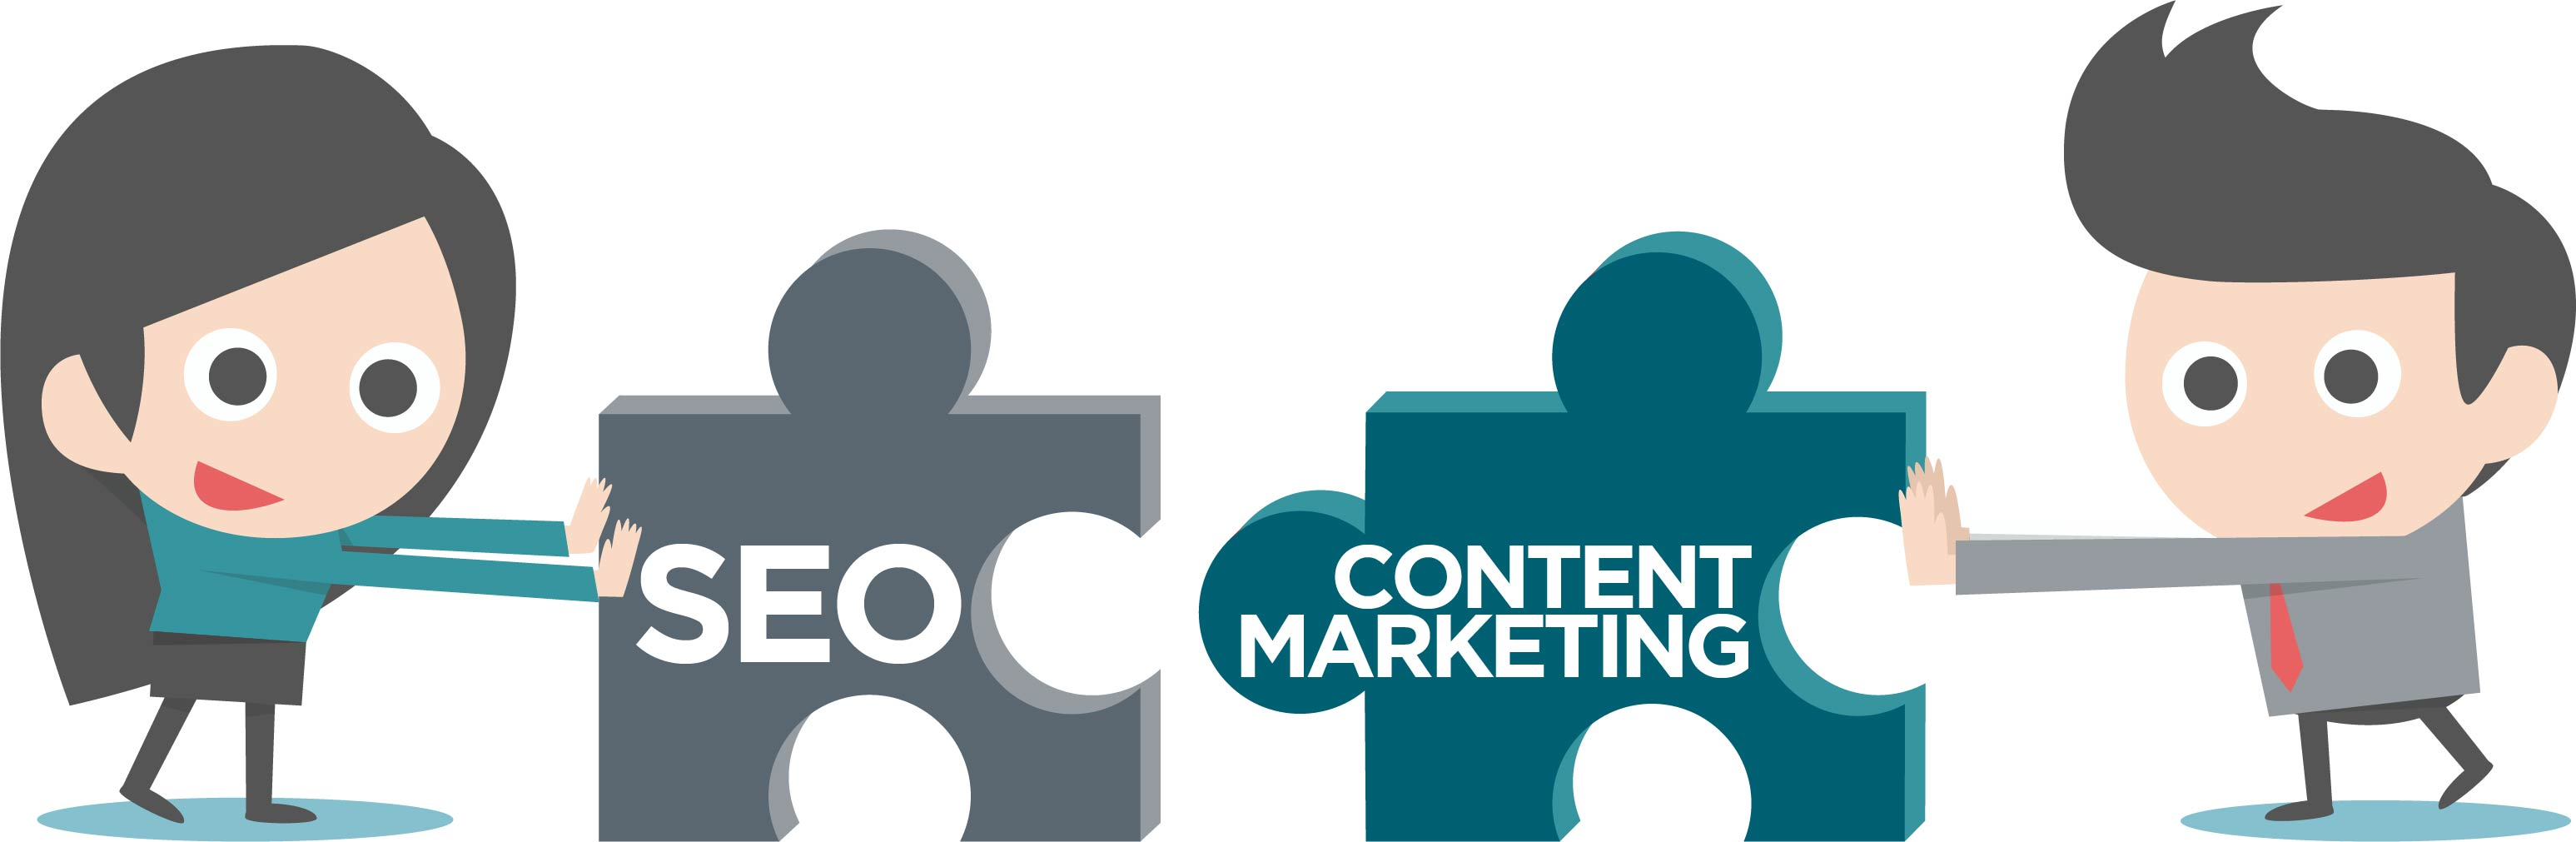 SEO or Content Marketing? You need both! The thing to understand is how they fit together — and how that combination applies to your digital marketing.